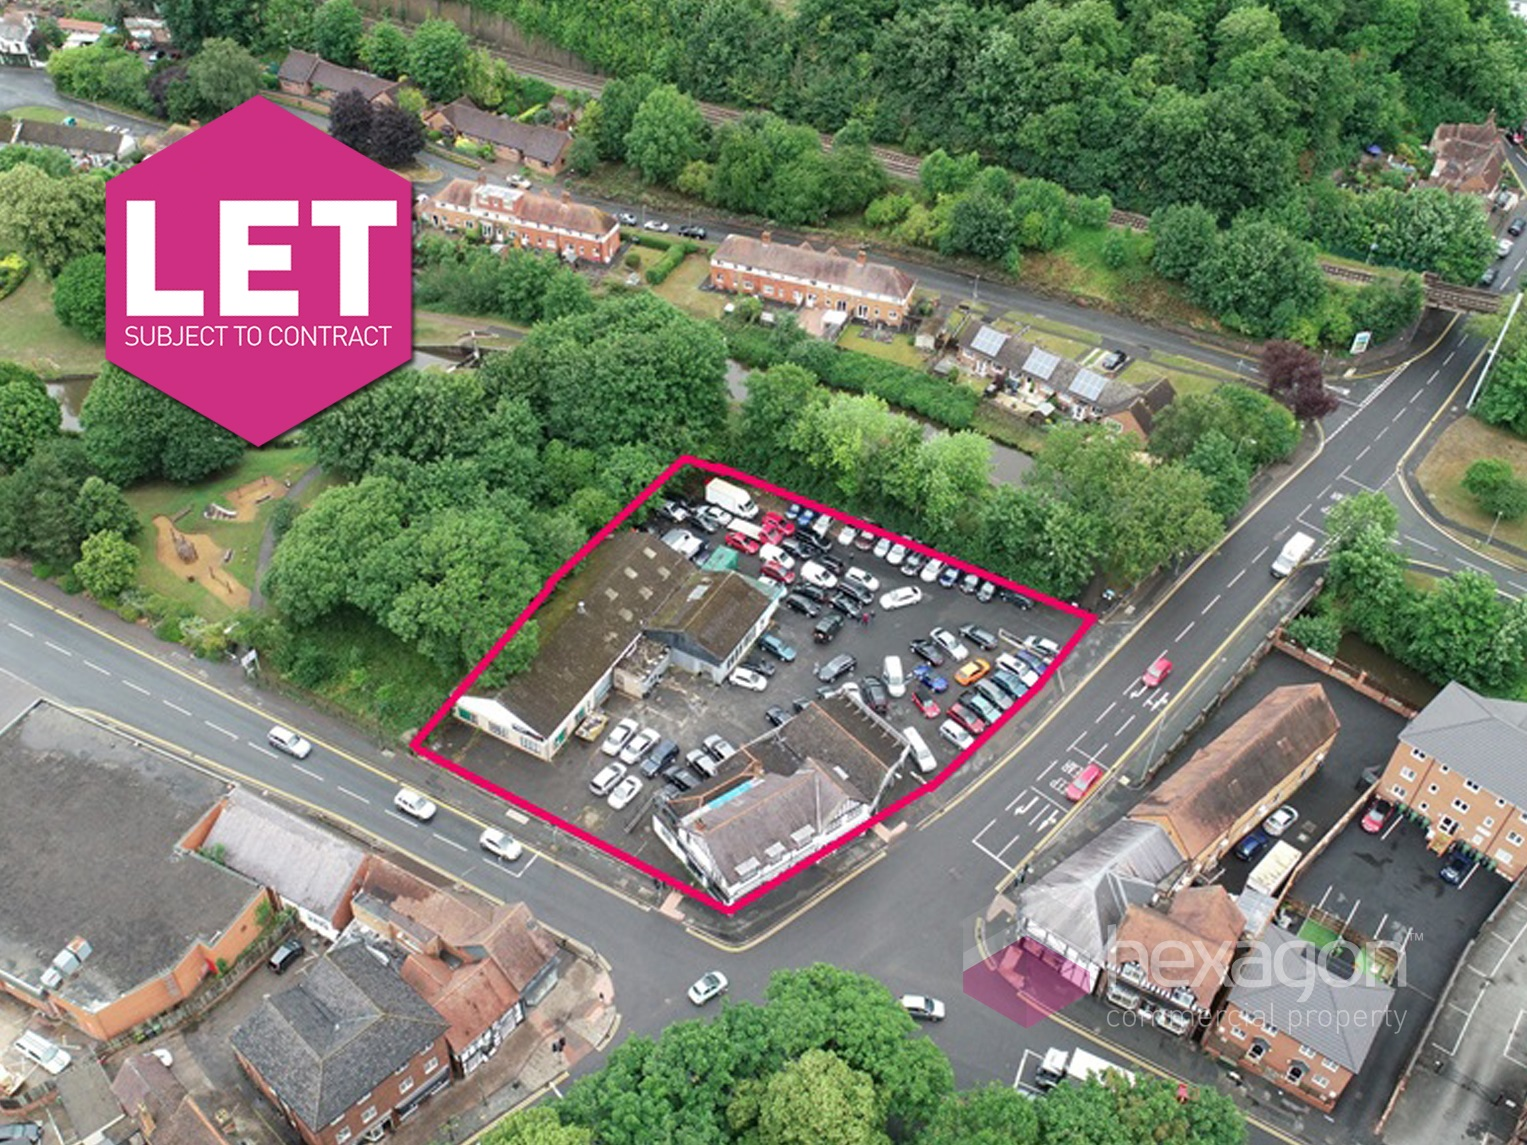 St Georges Square Droitwich - Click for more details